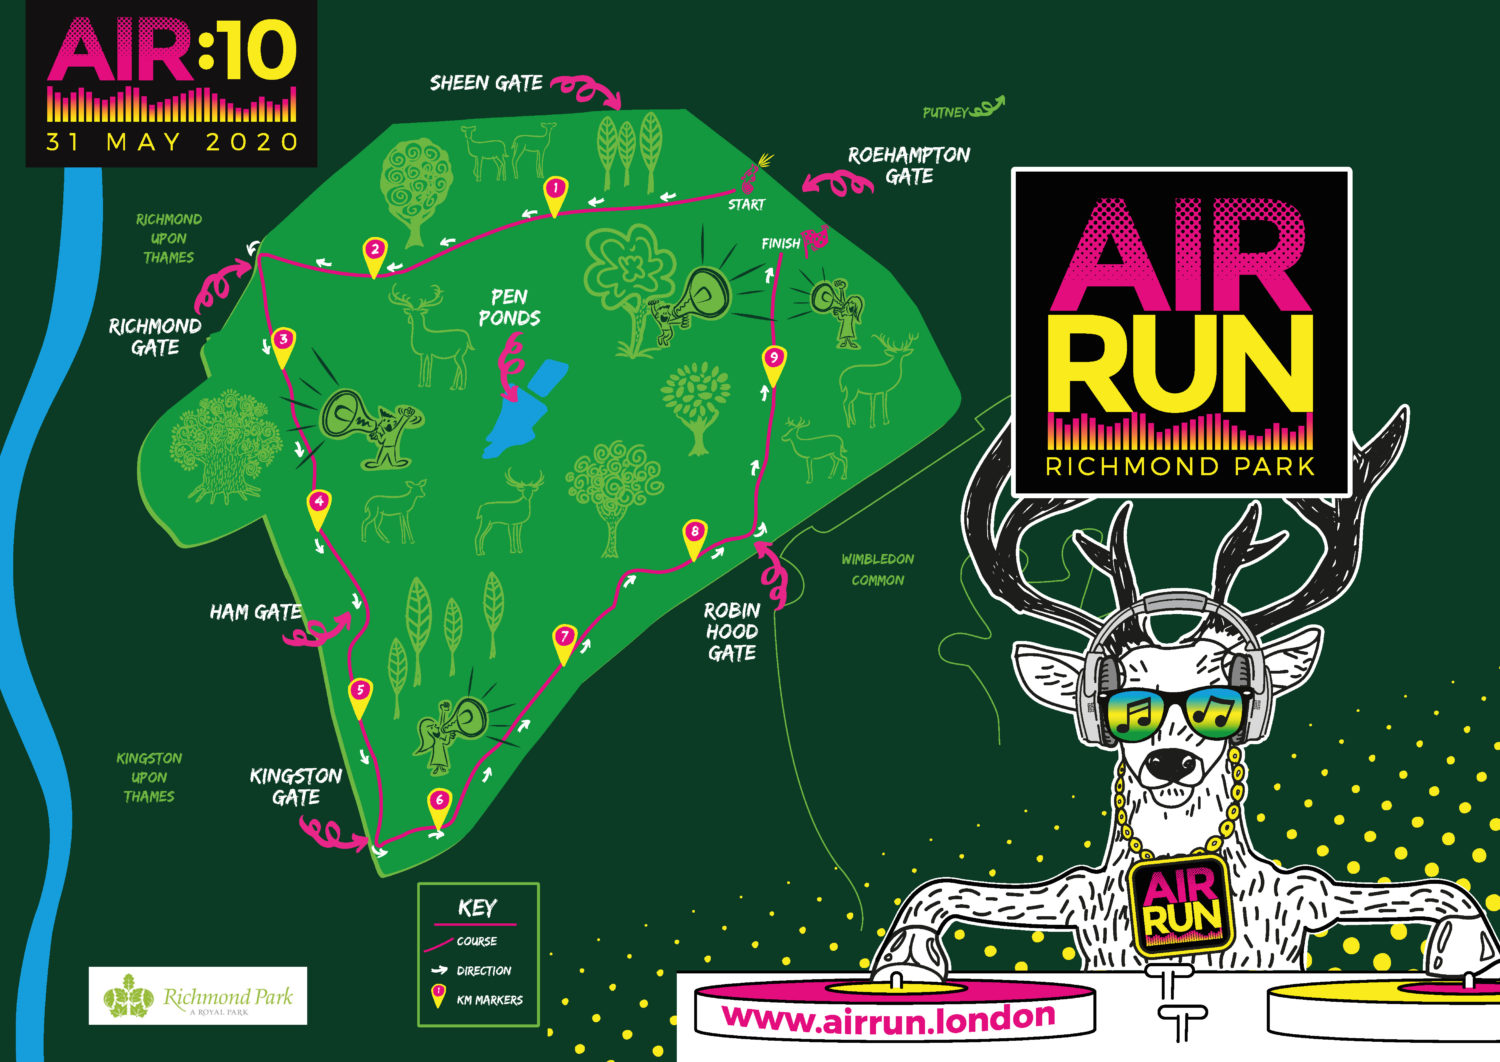 The map for the AIR RUN 10k